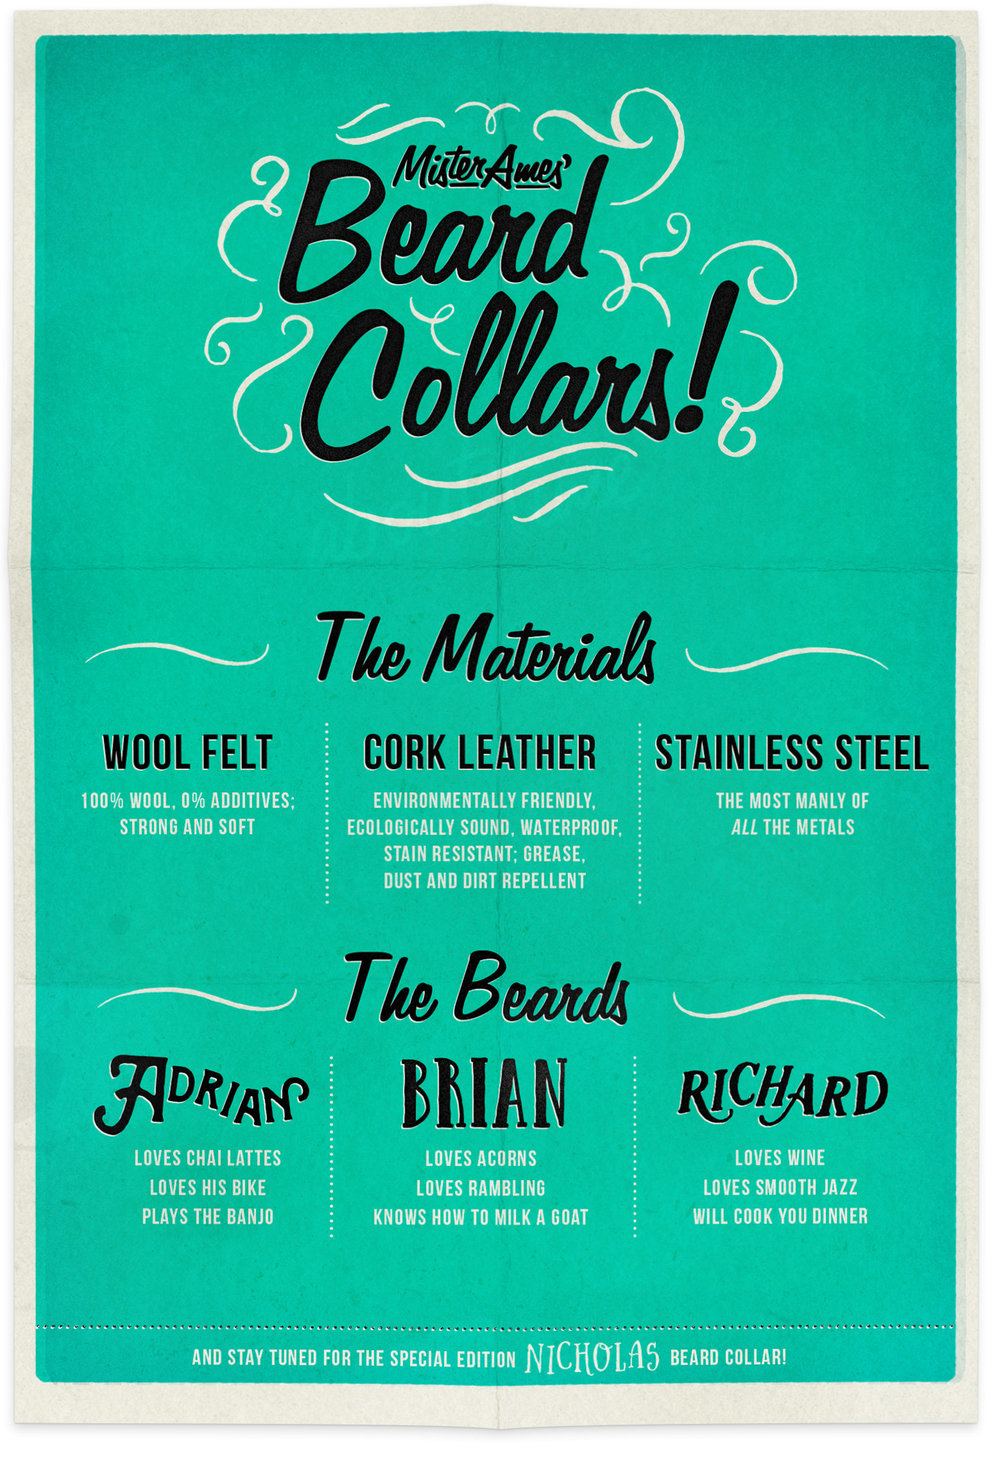 Beard Collars: peter pan necklaces that double as emergency beards!